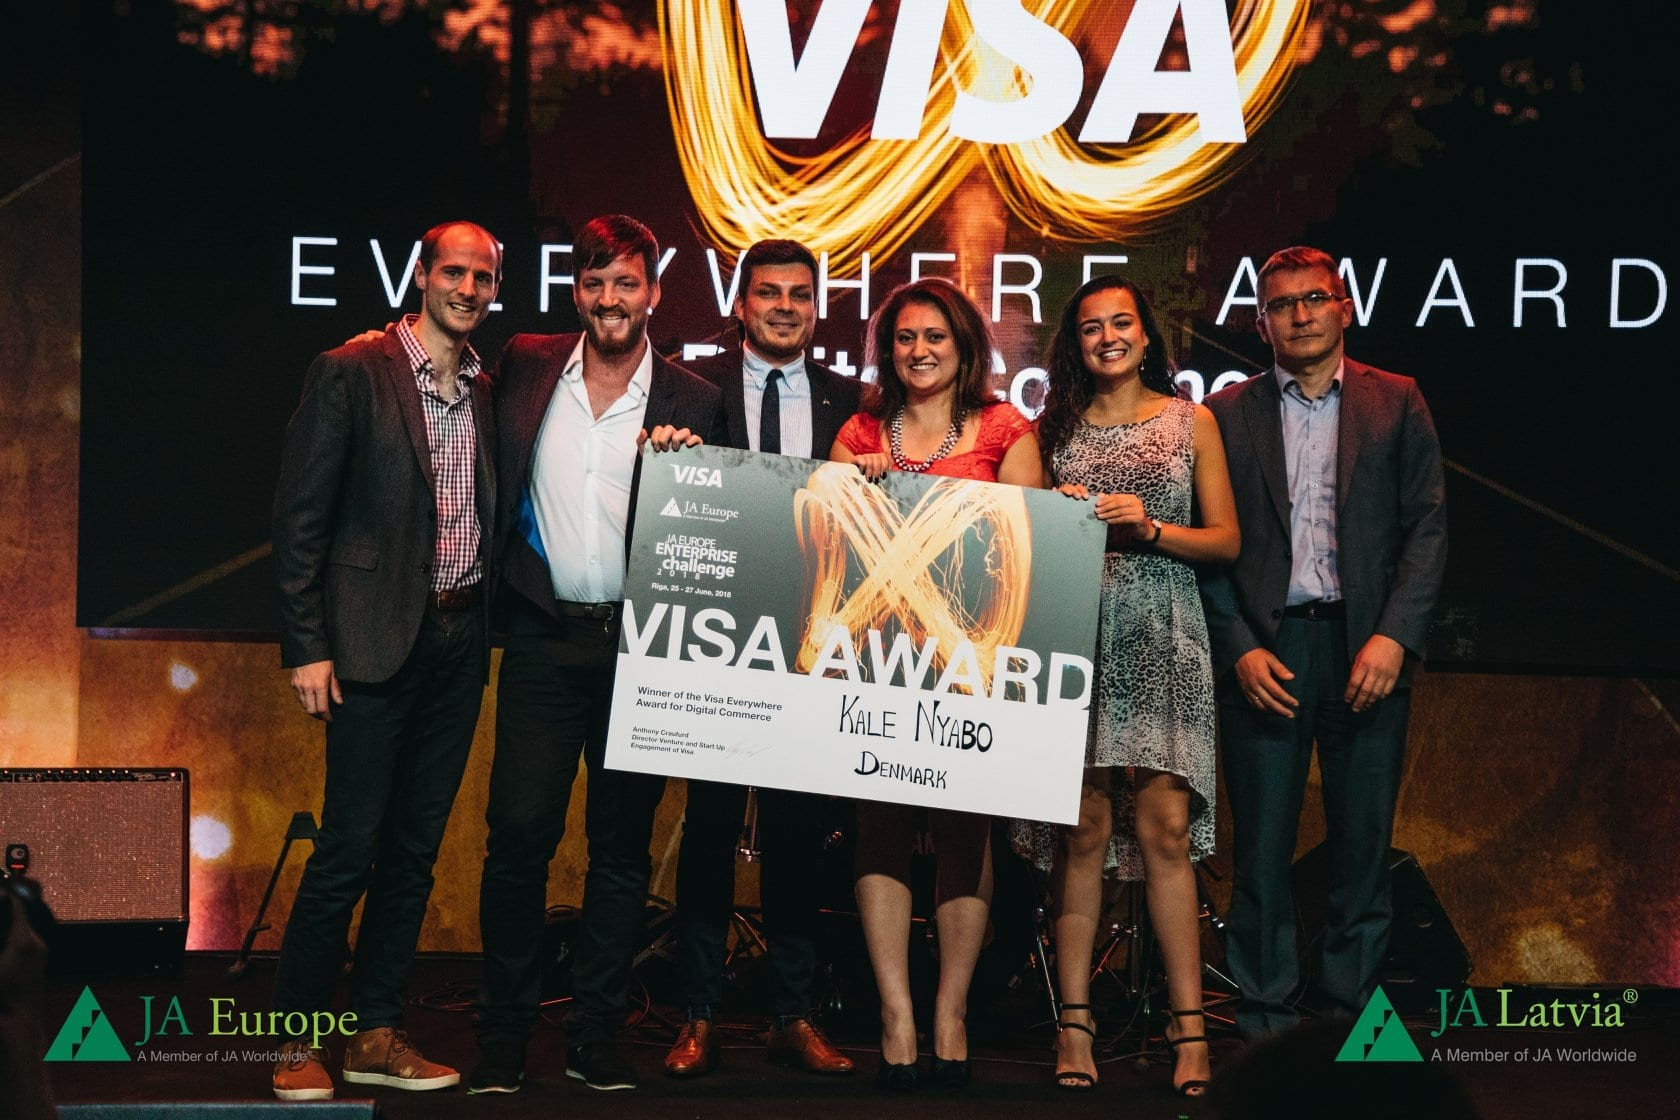 Kale Nyabo – Winners of the VISA Everywhere Award